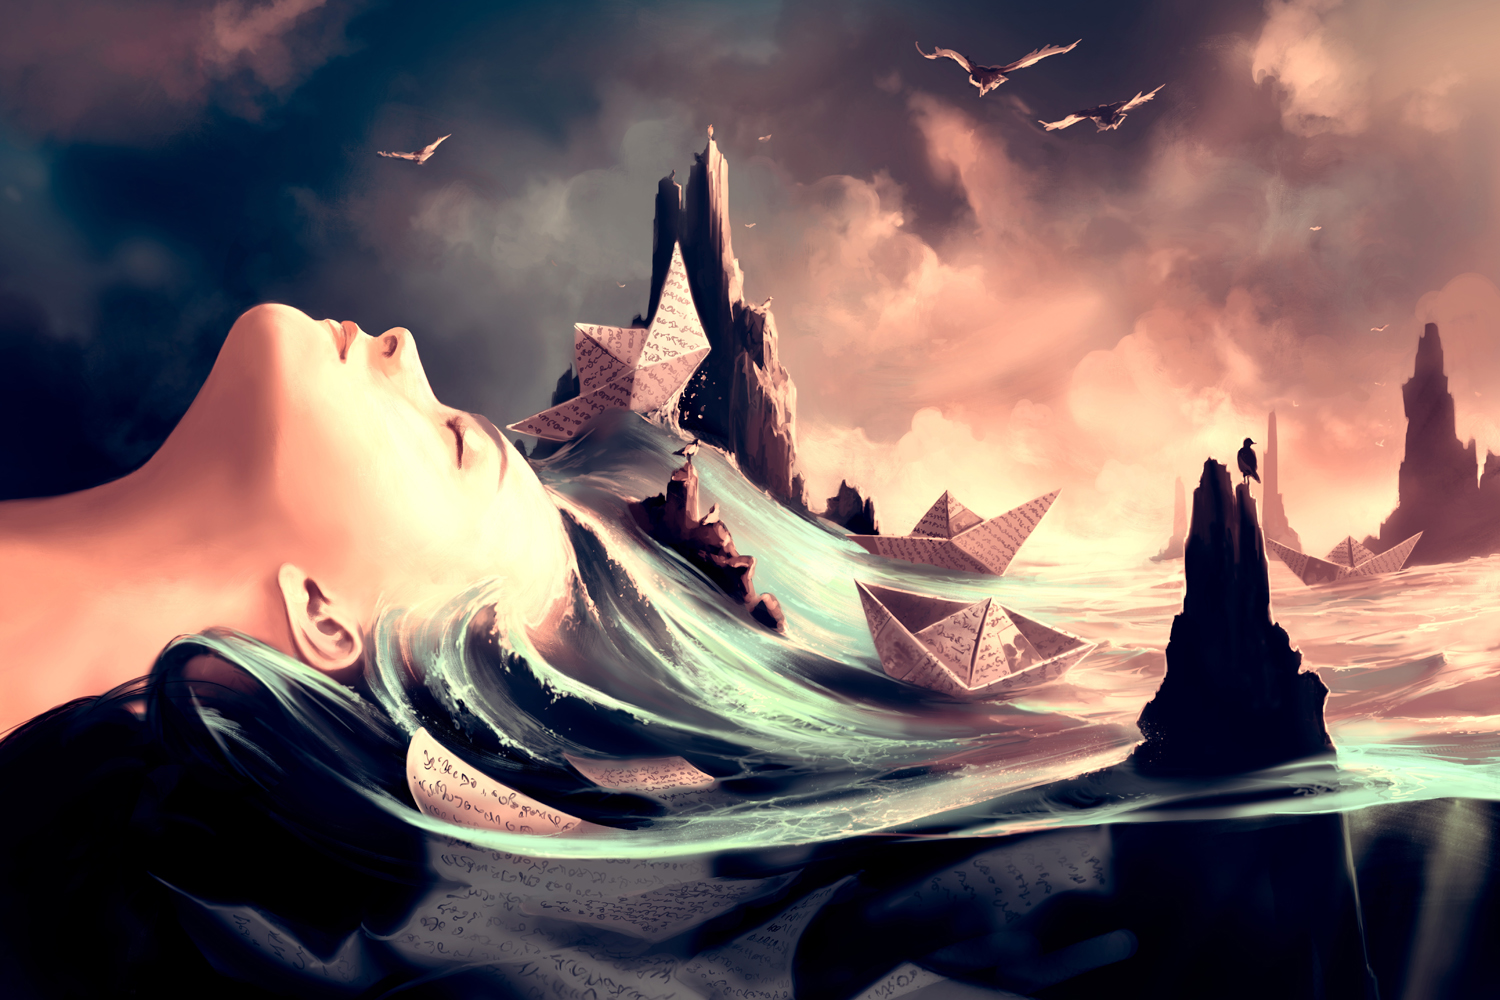 ©Cyril Rolando - Paint Me My Dreams